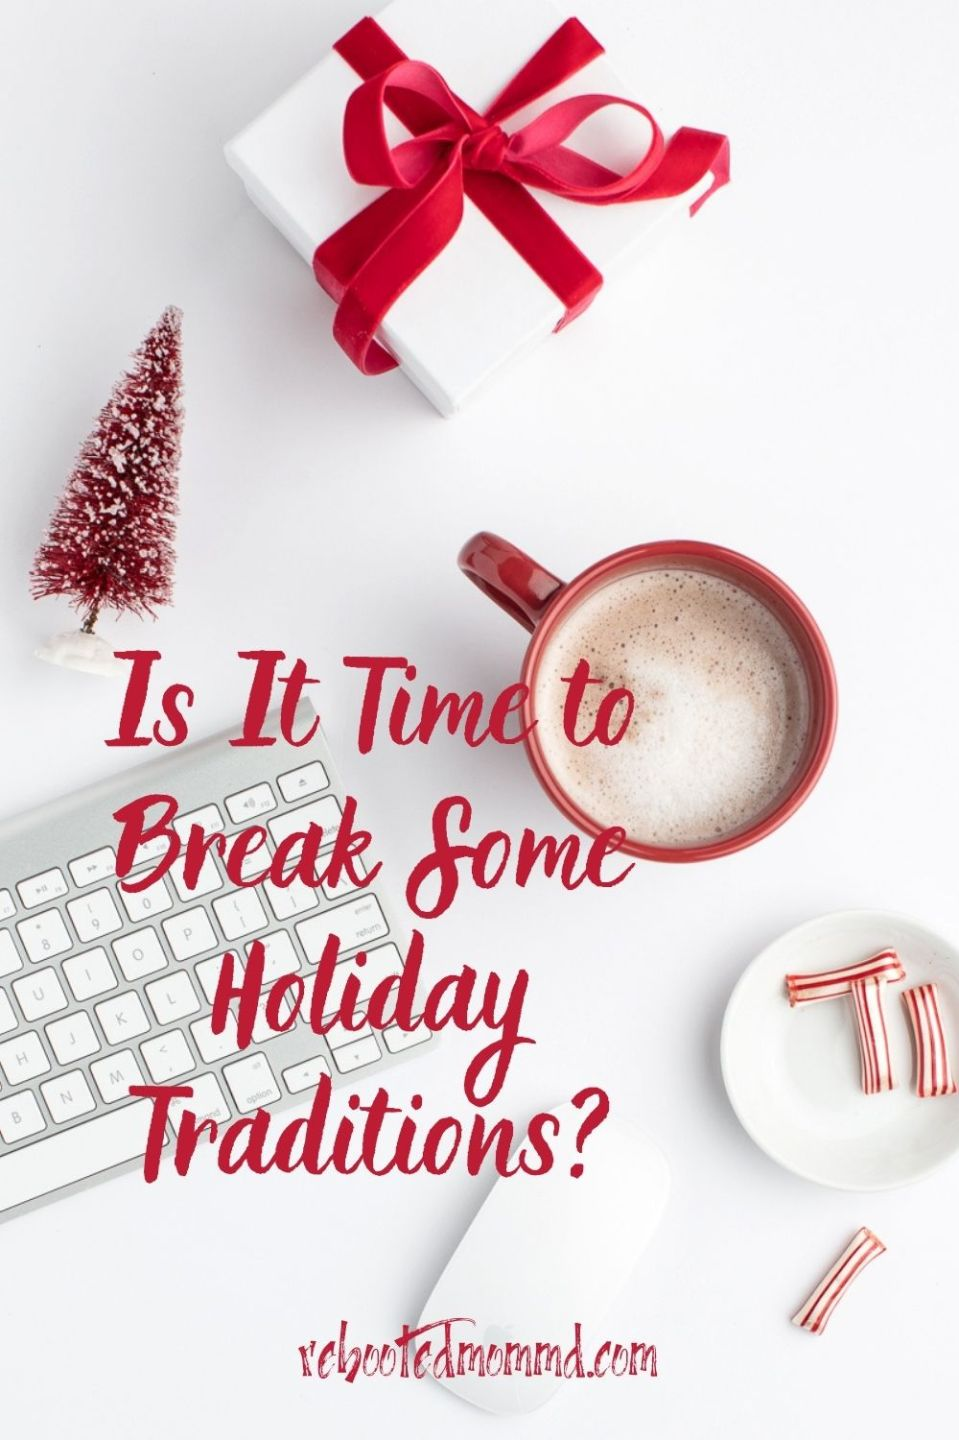 Is It Time to Break Some Holiday Traditions?